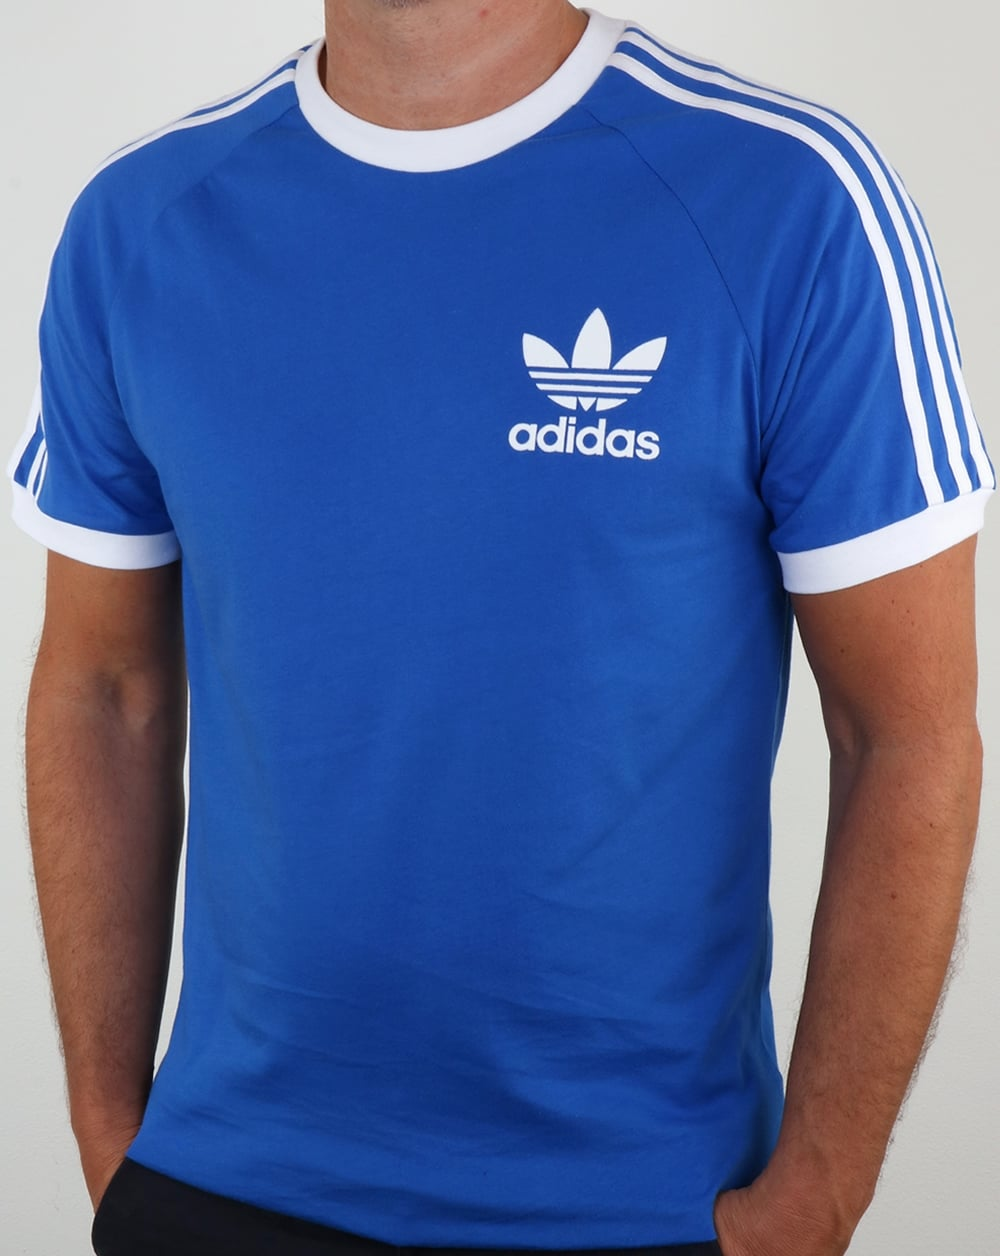 adidas original tee shirt t shirt design collections. Black Bedroom Furniture Sets. Home Design Ideas